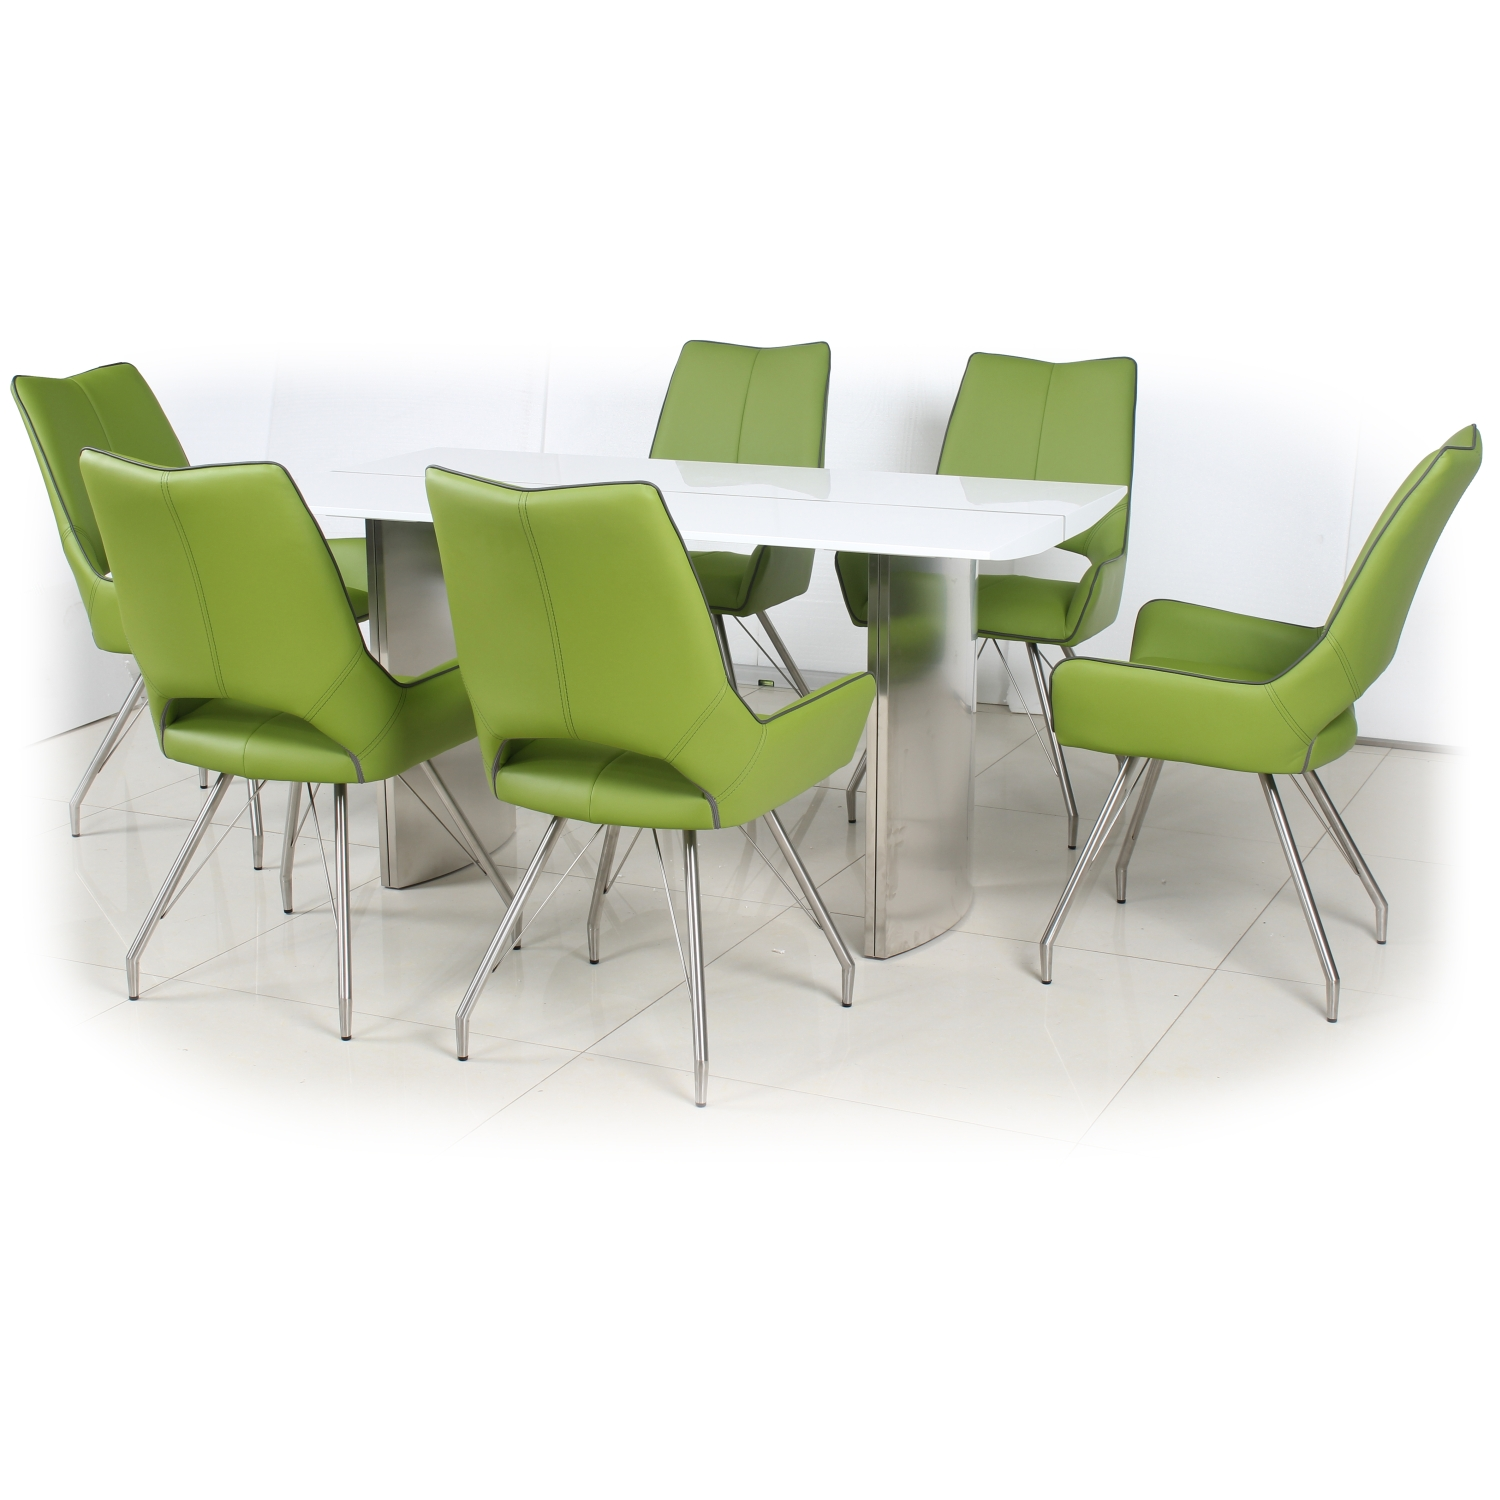 White High Gloss Dining Table with 4 Graphite Grey Leather Effect Chairs with Piping